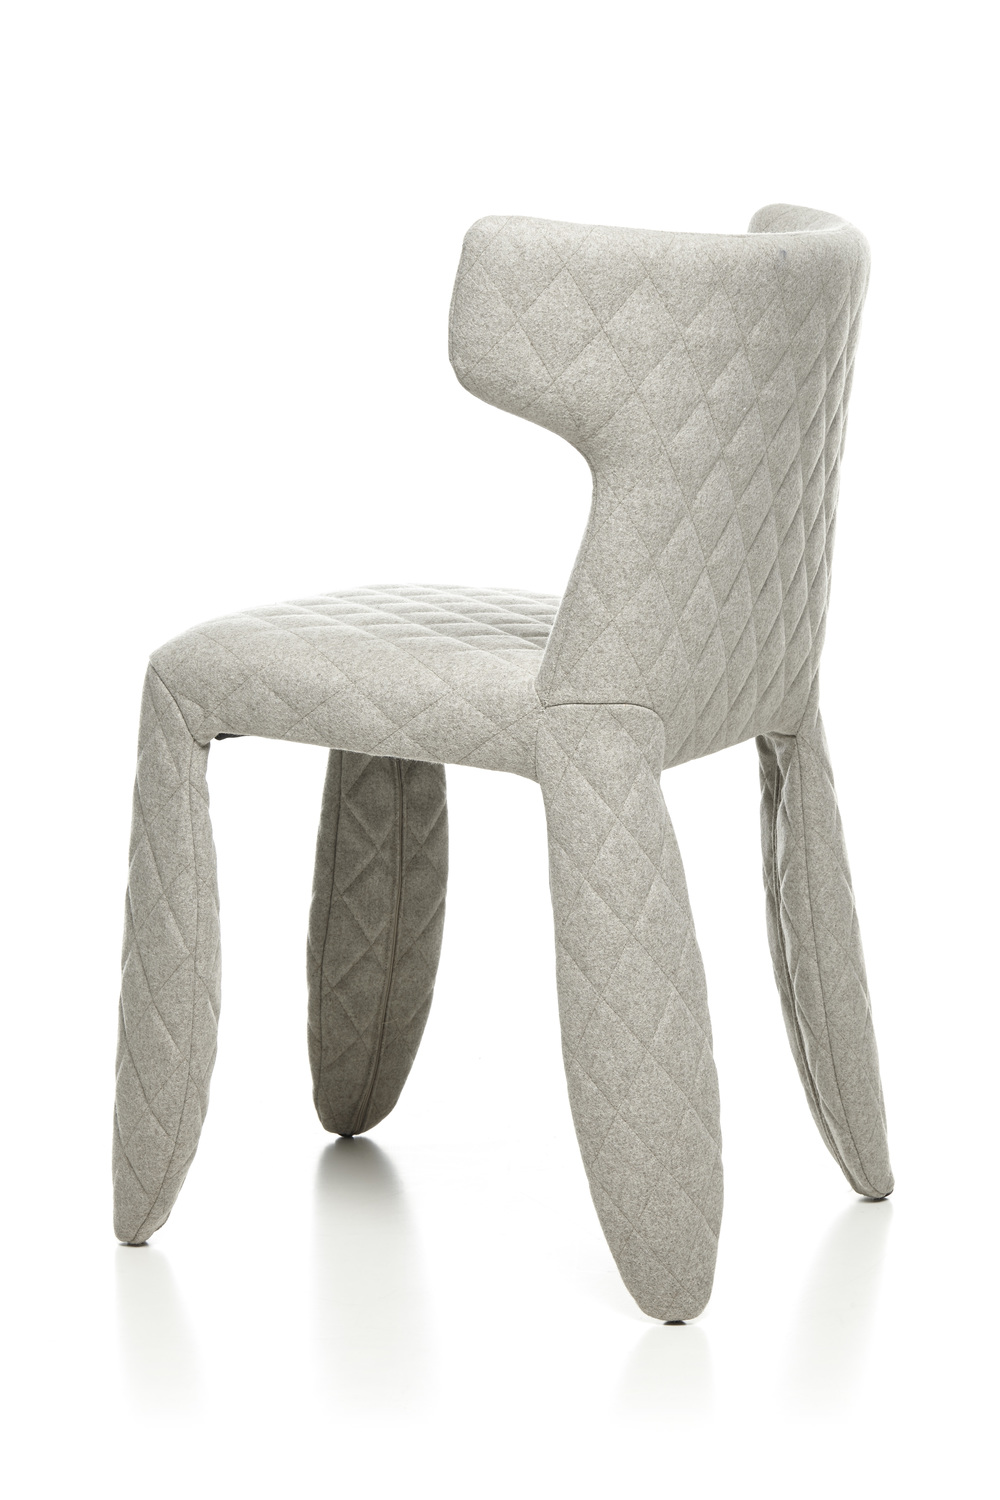 monster_chair_divina_220_by_marcel_wanders_for_moooi